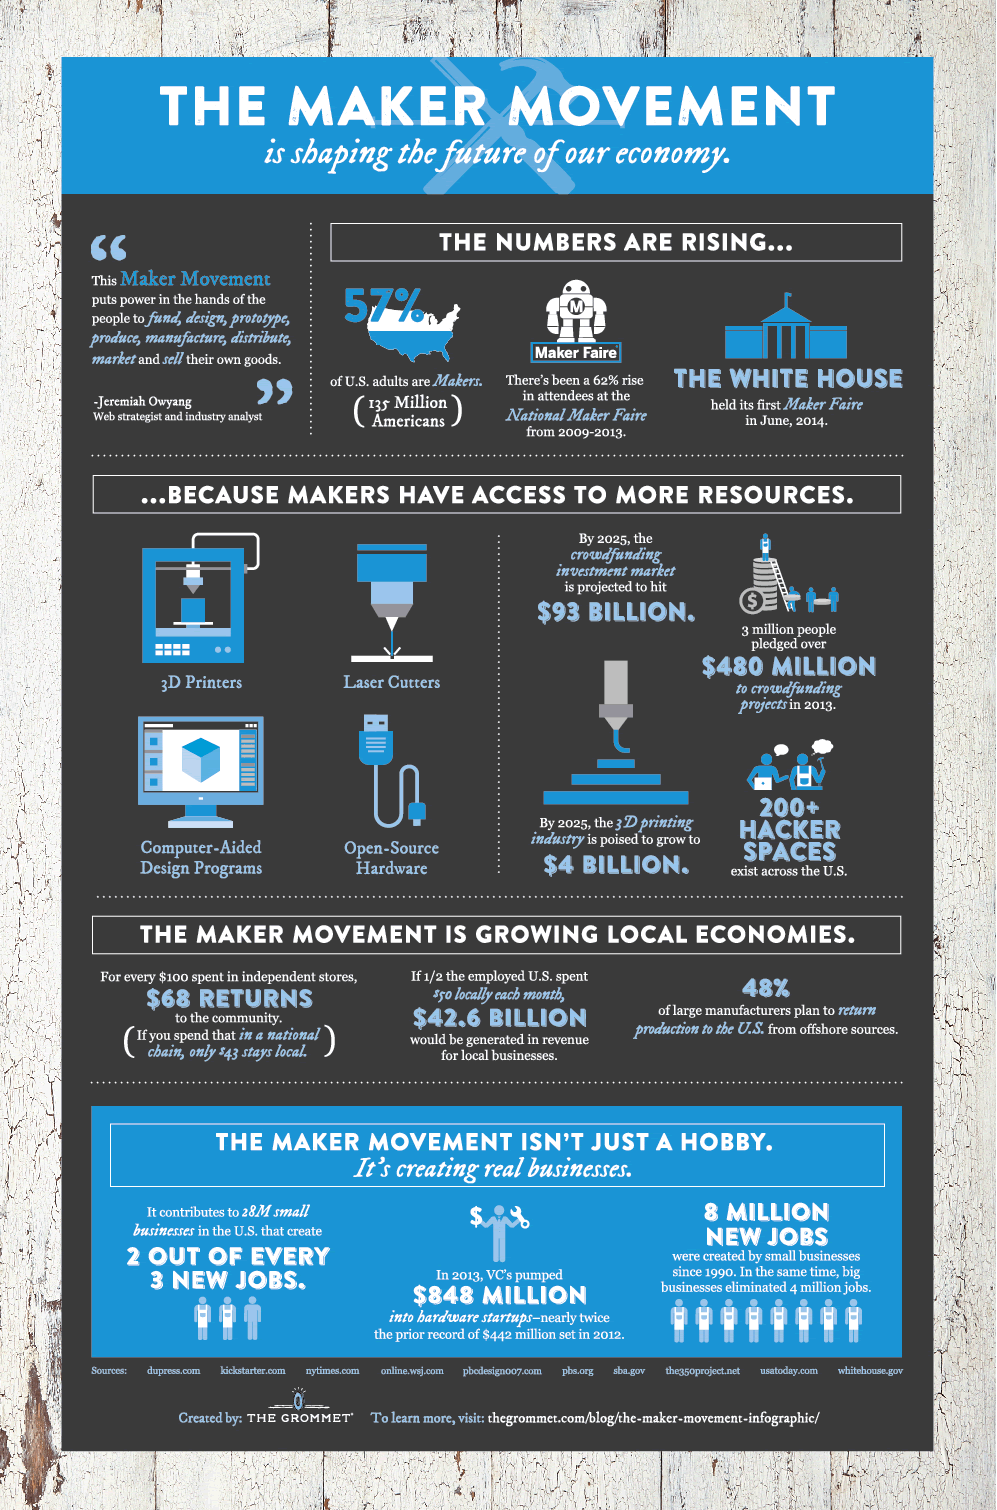 The Maker Movement Our Future Economy An Infographic